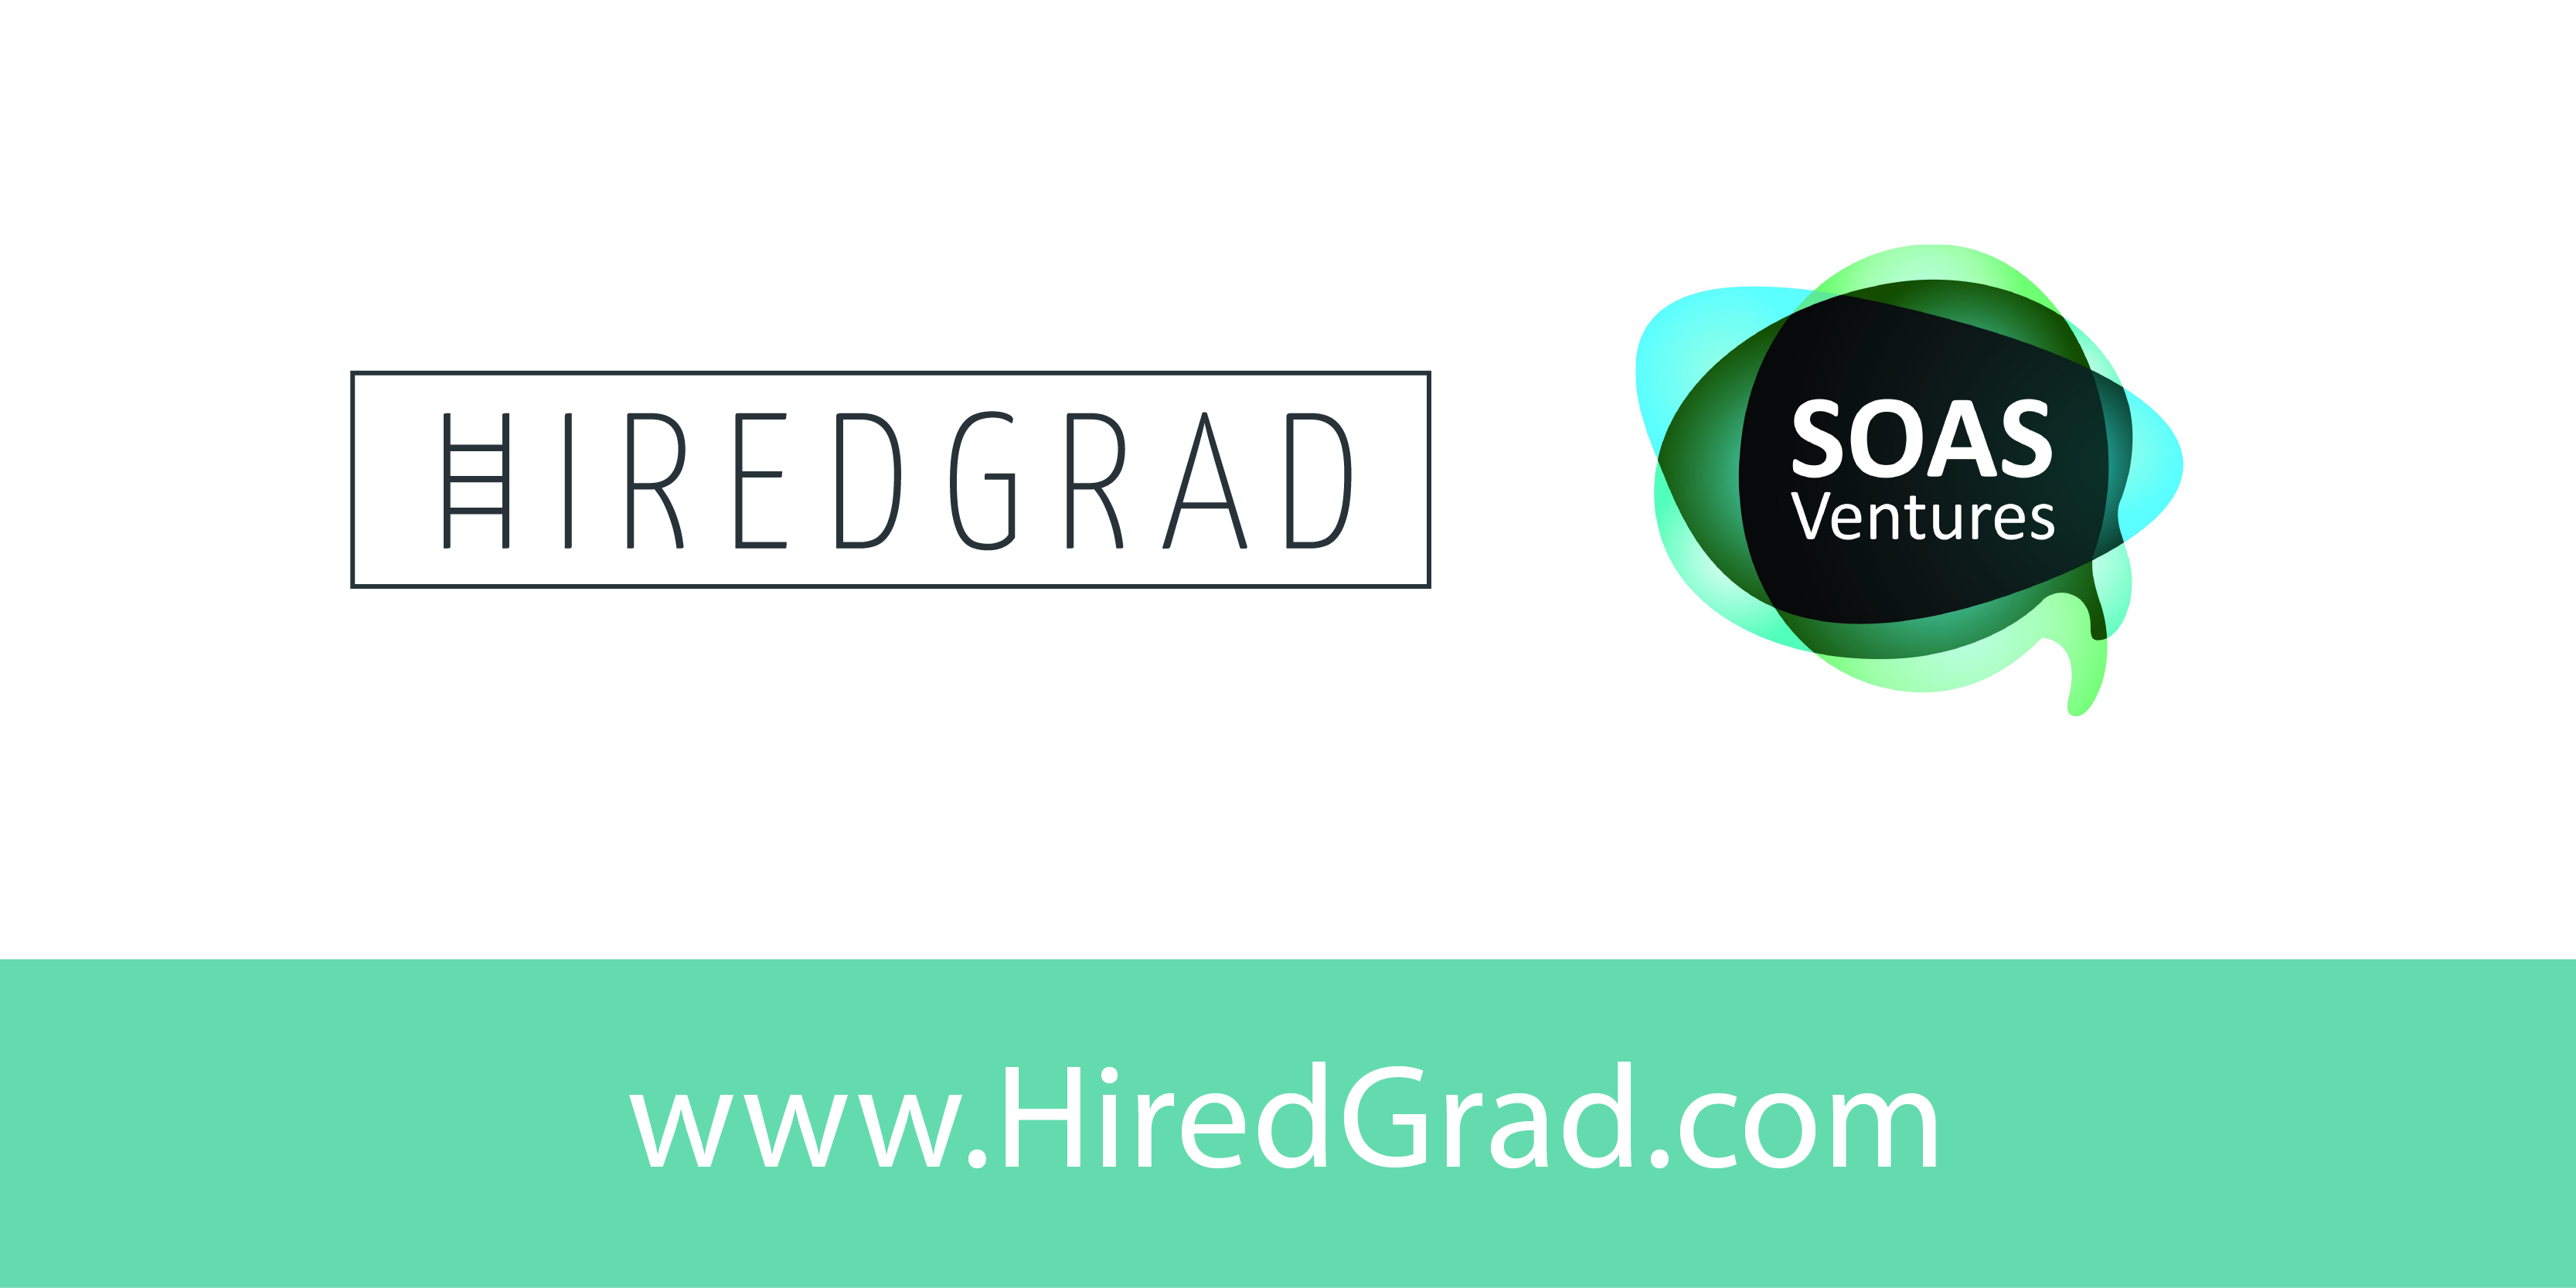 startup networking soas hiredgrad tickets thu nov 17 2016 at the event will take place on the 17th of from 6pm to 8pm at soas university of london paul webley wing north block torrington square